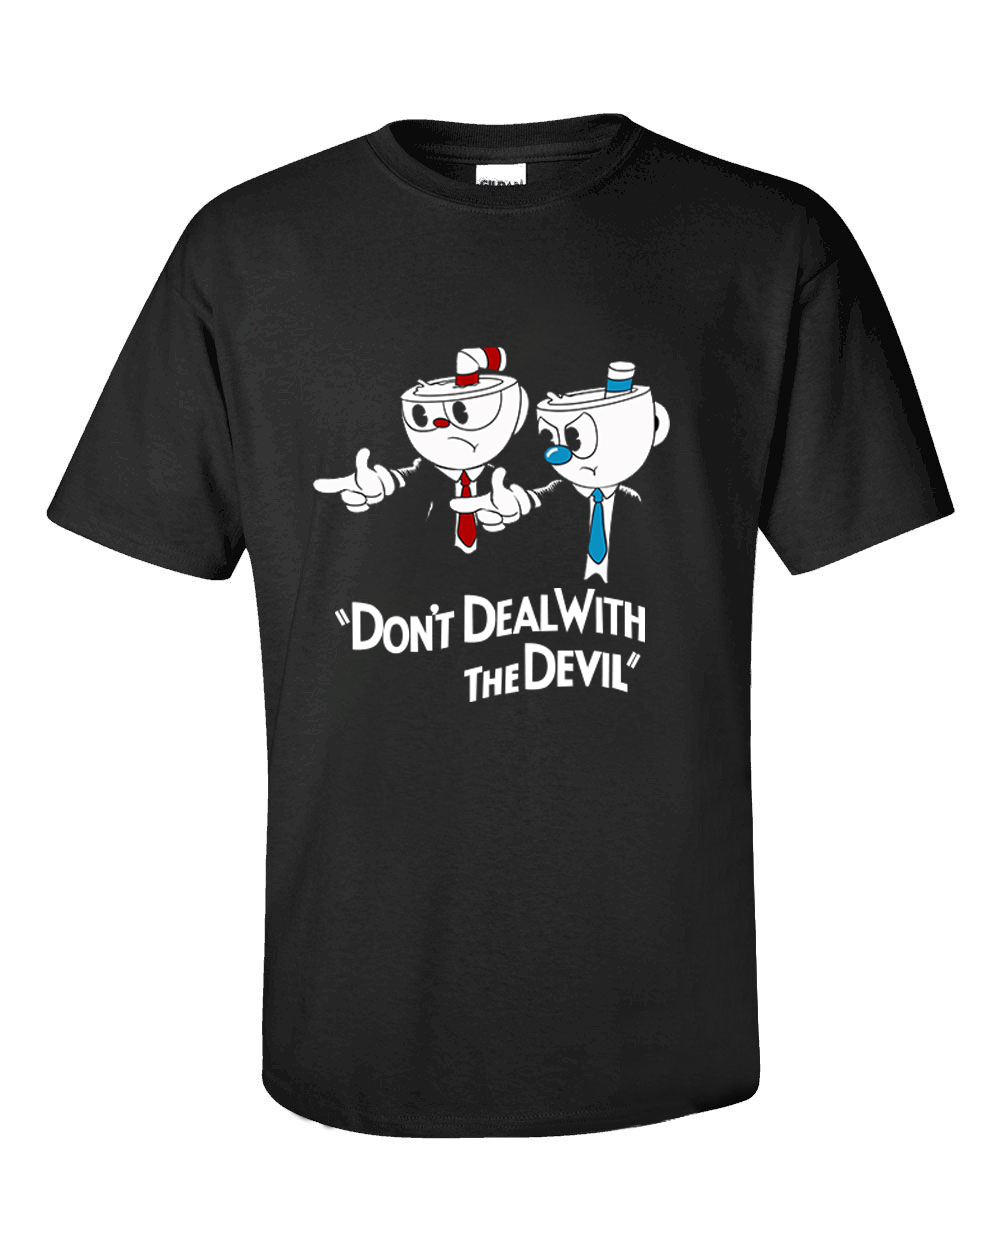 New Arrival Teacup Cup Head T Shirt Don't Deal With The Devil T-shirt Cotton O-neck Black Tee Shirt